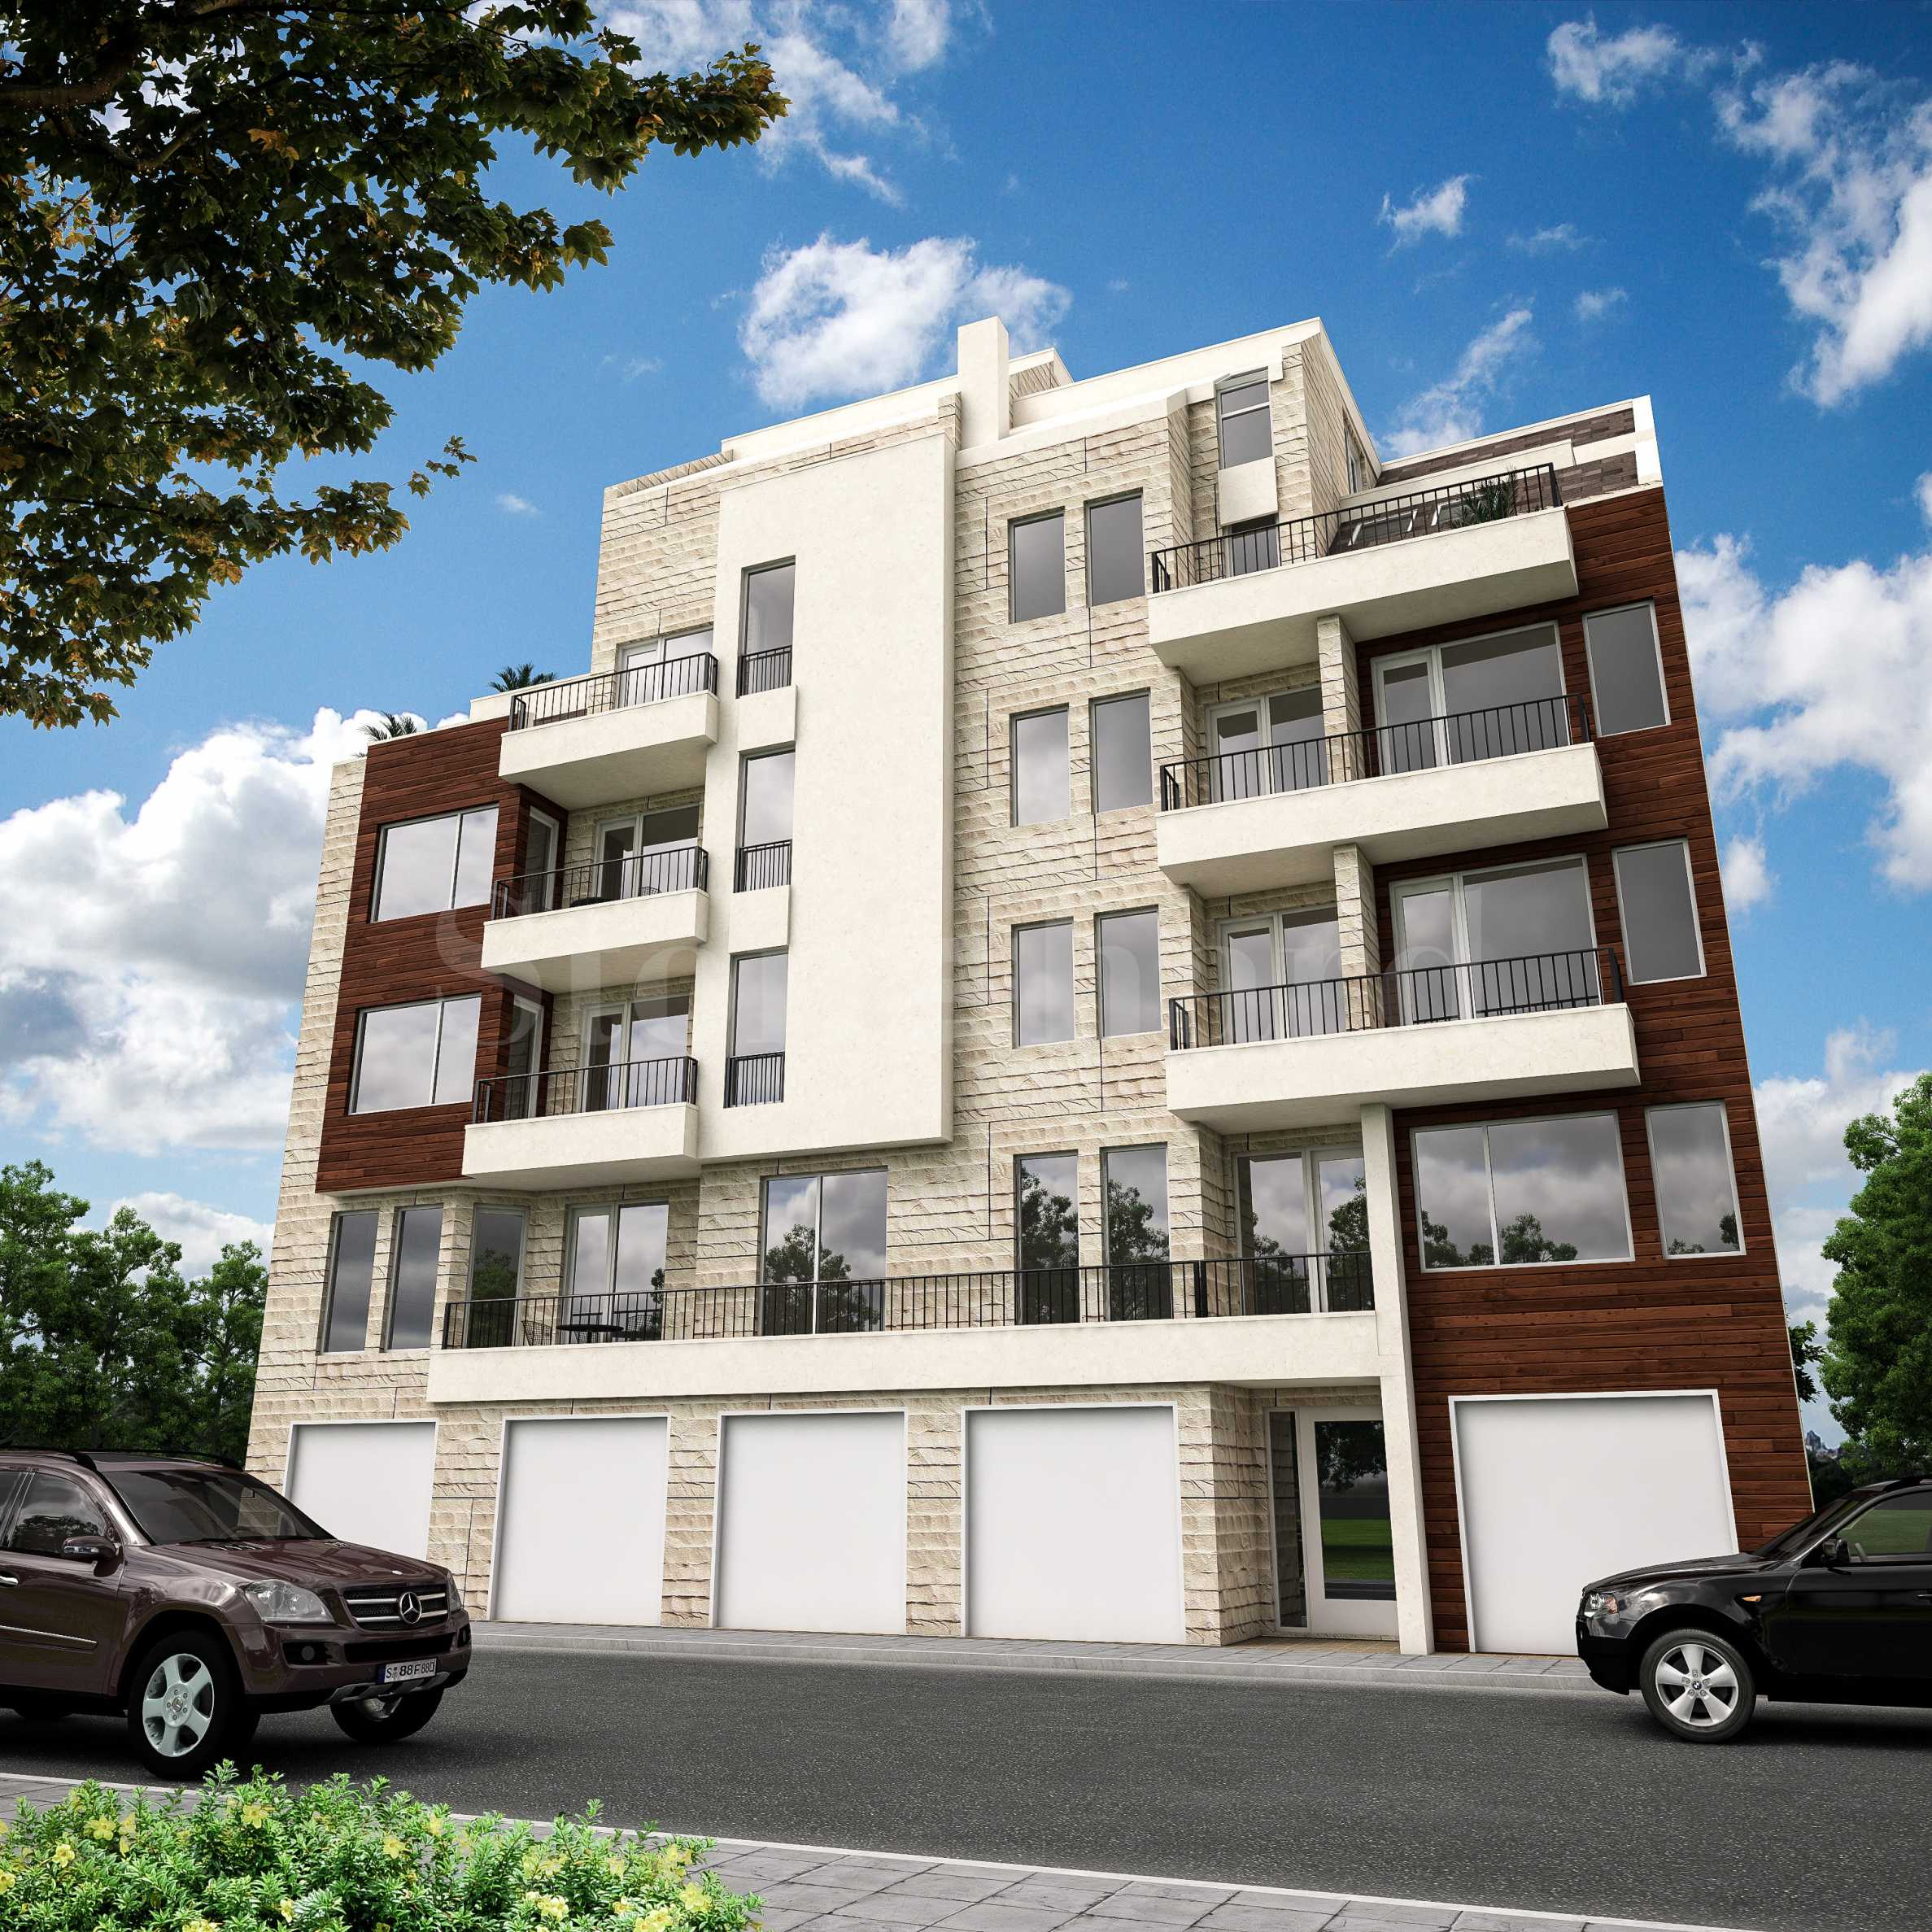 New elegant 5-storey building in the central area of Burgas2 - Stonehard